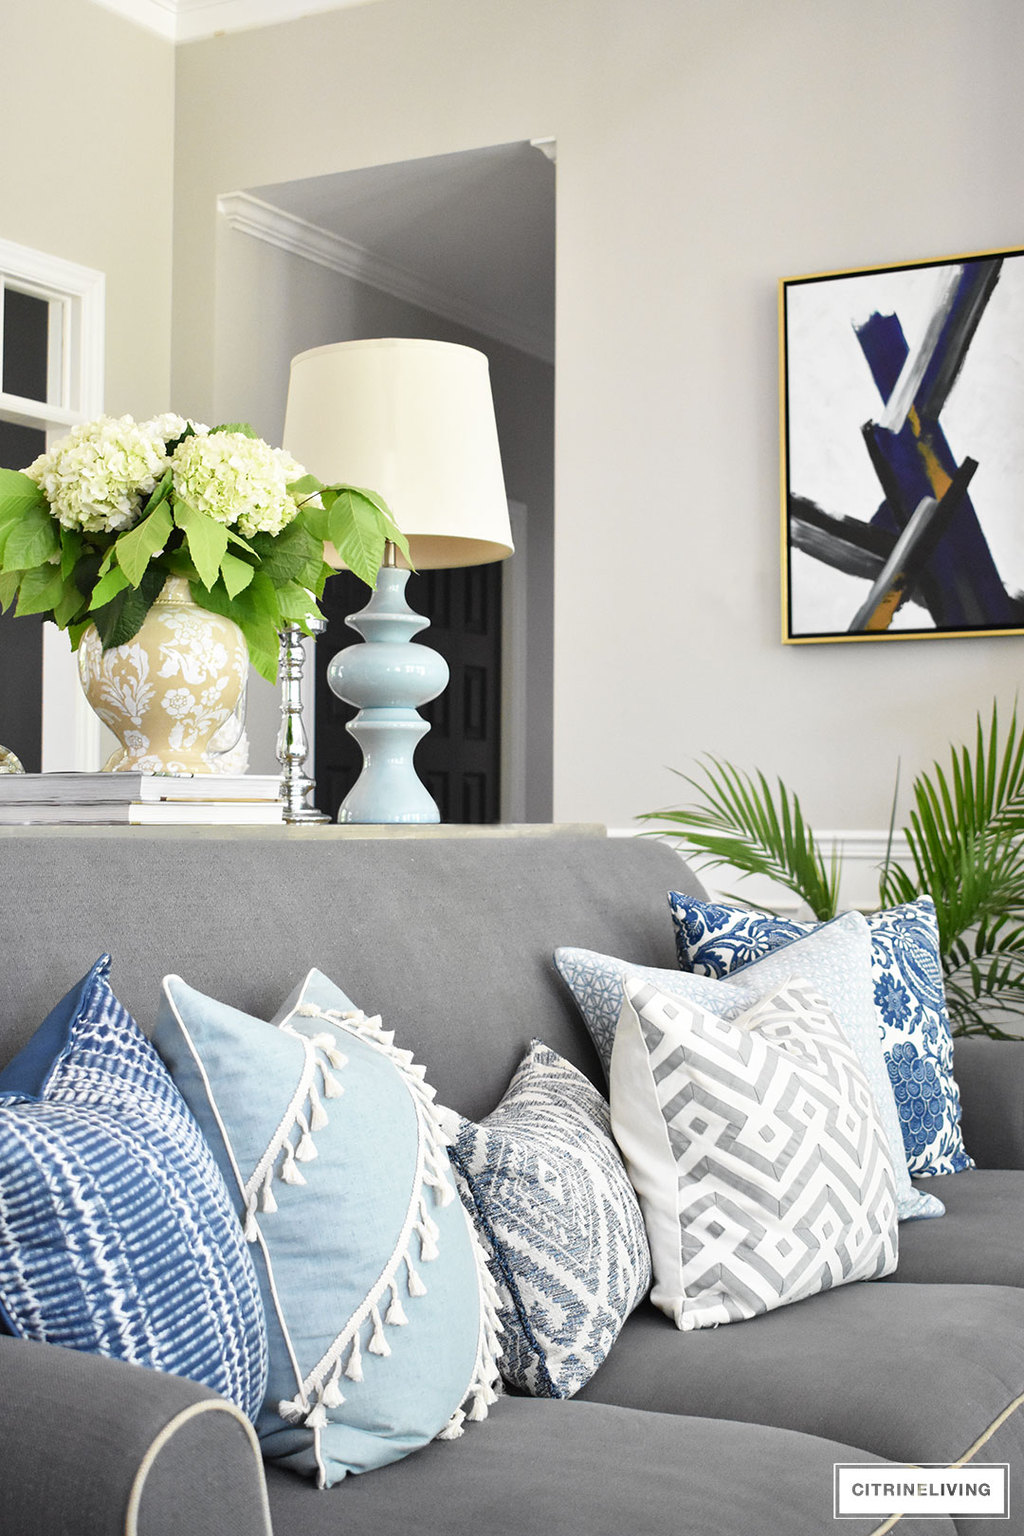 Summer decorated living room with layers of beautiful blue patterned pillows accented with fresh greenery and hydrangeas.